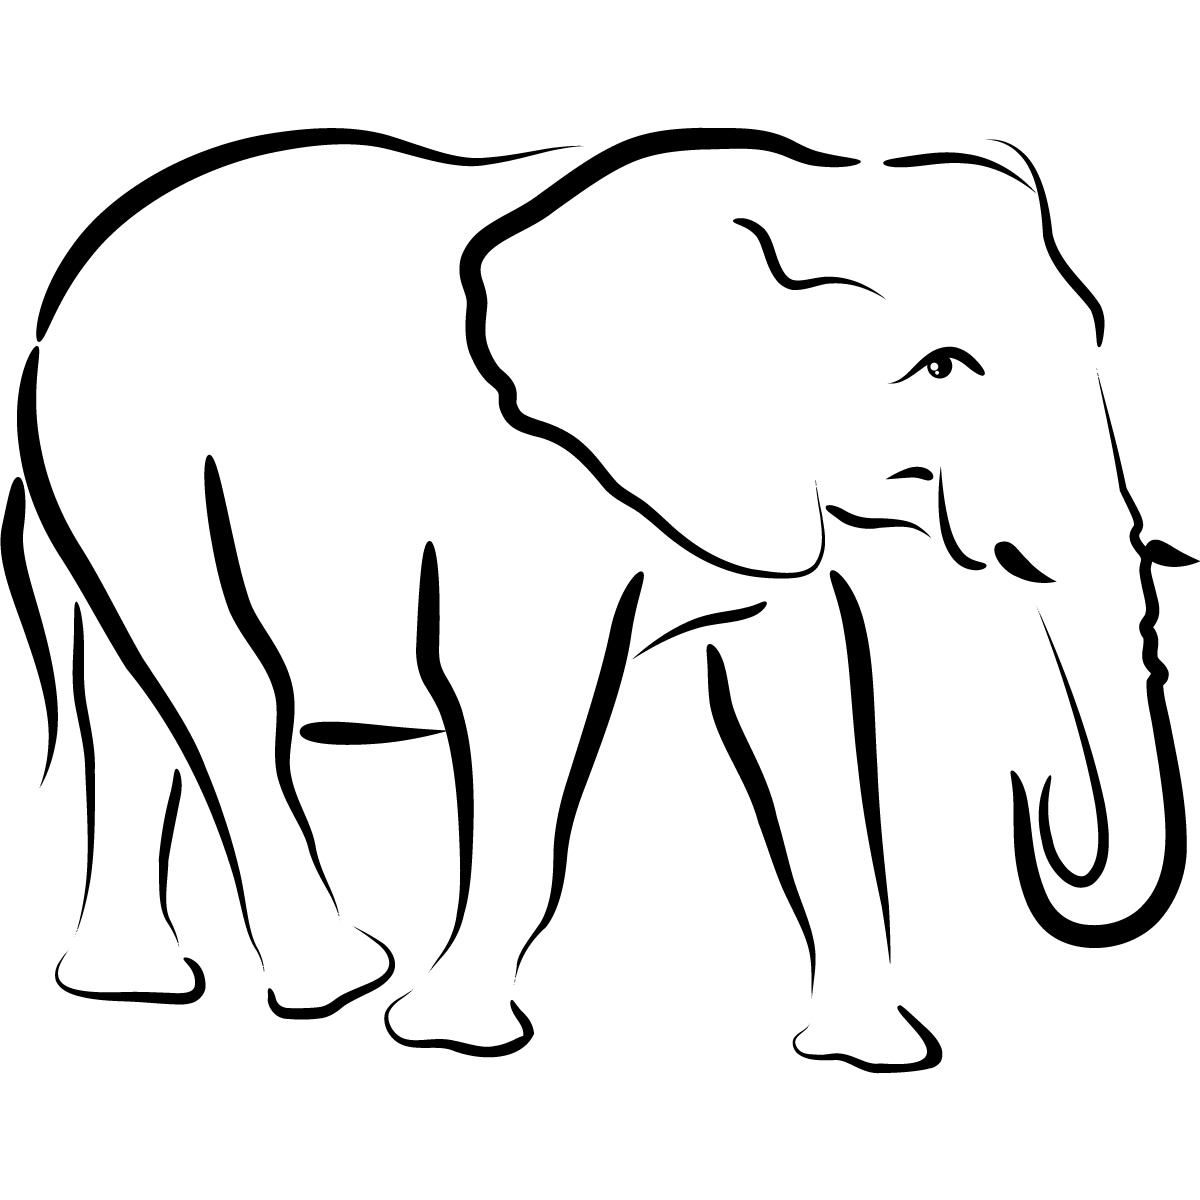 Free Animal Outline, Download Free Clip Art, Free Clip Art.